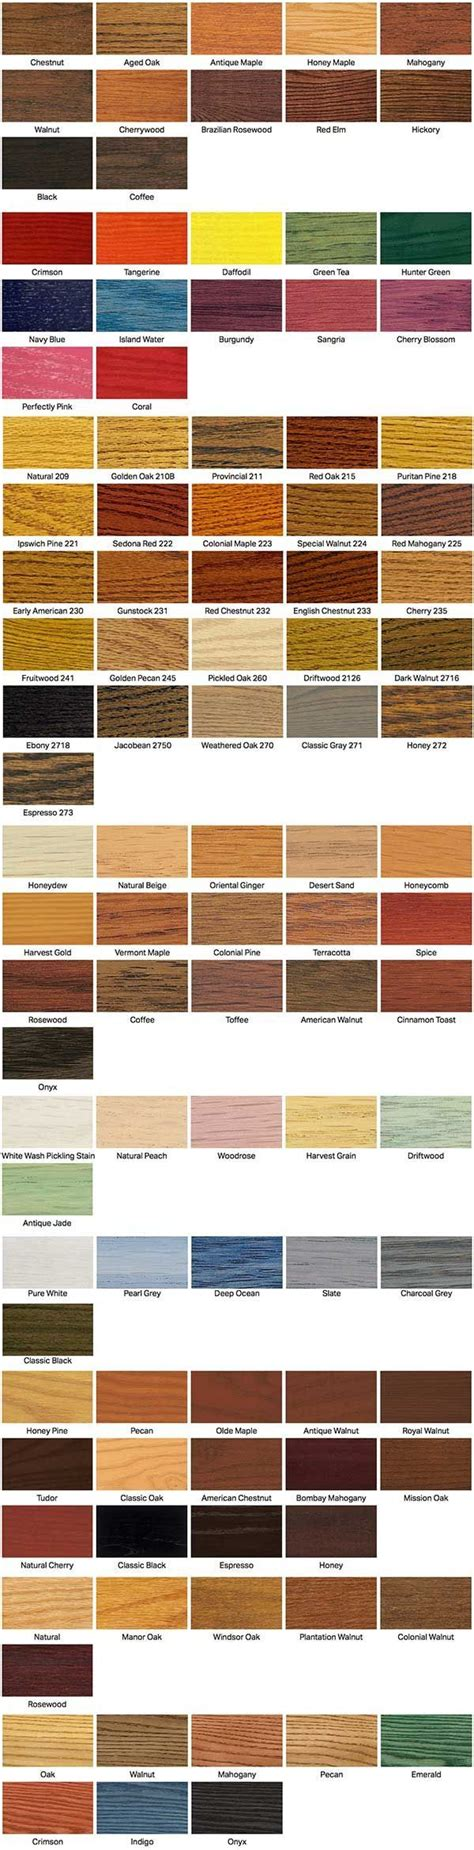 minwax stain colors the 25 best minwax stain colors ideas on